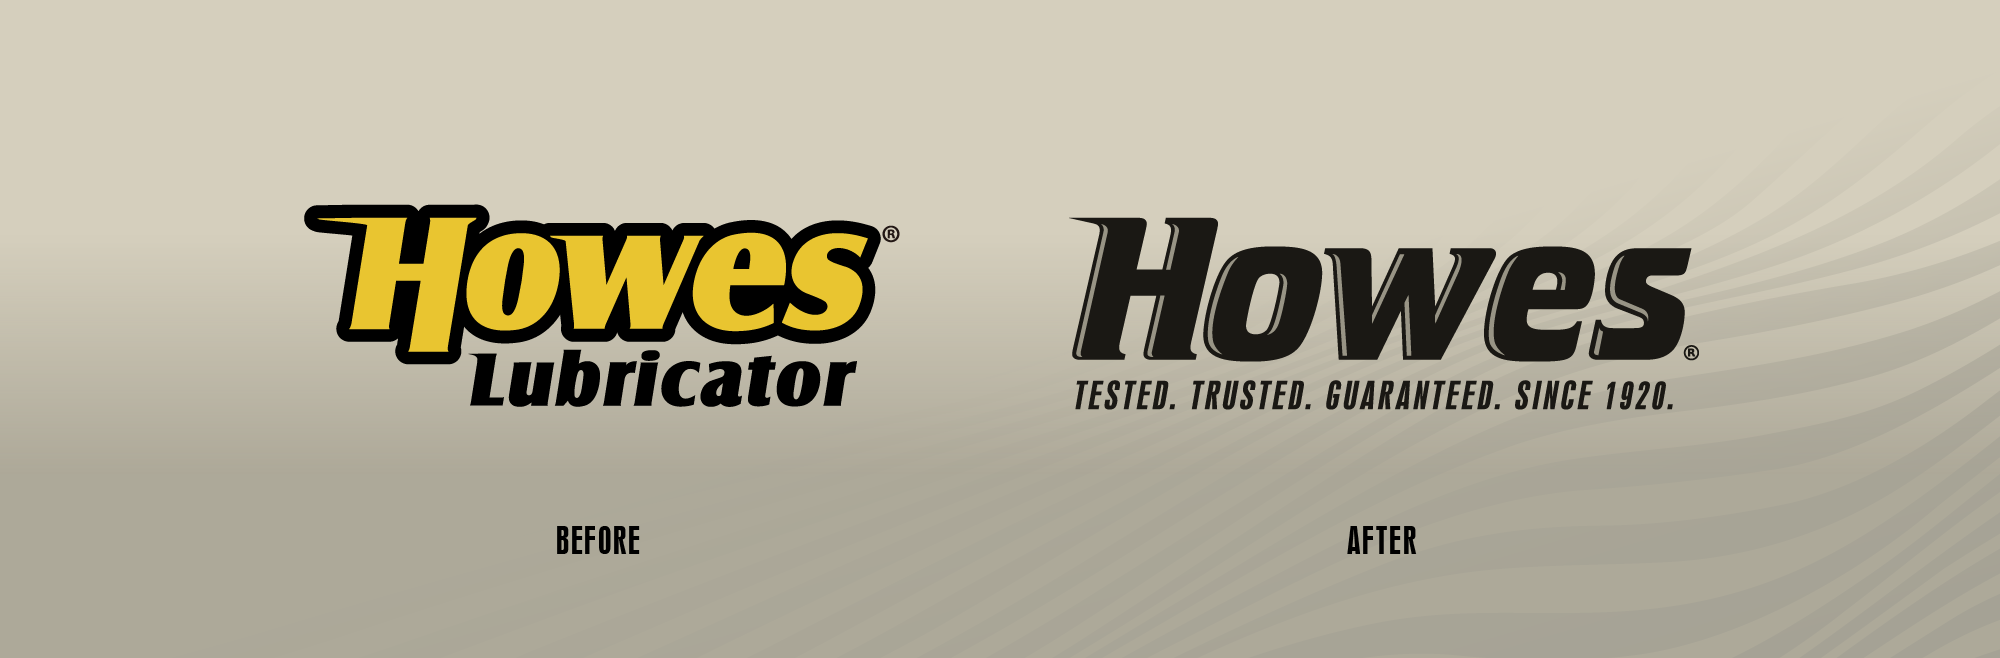 Howes_CaseStudy_images-03.png